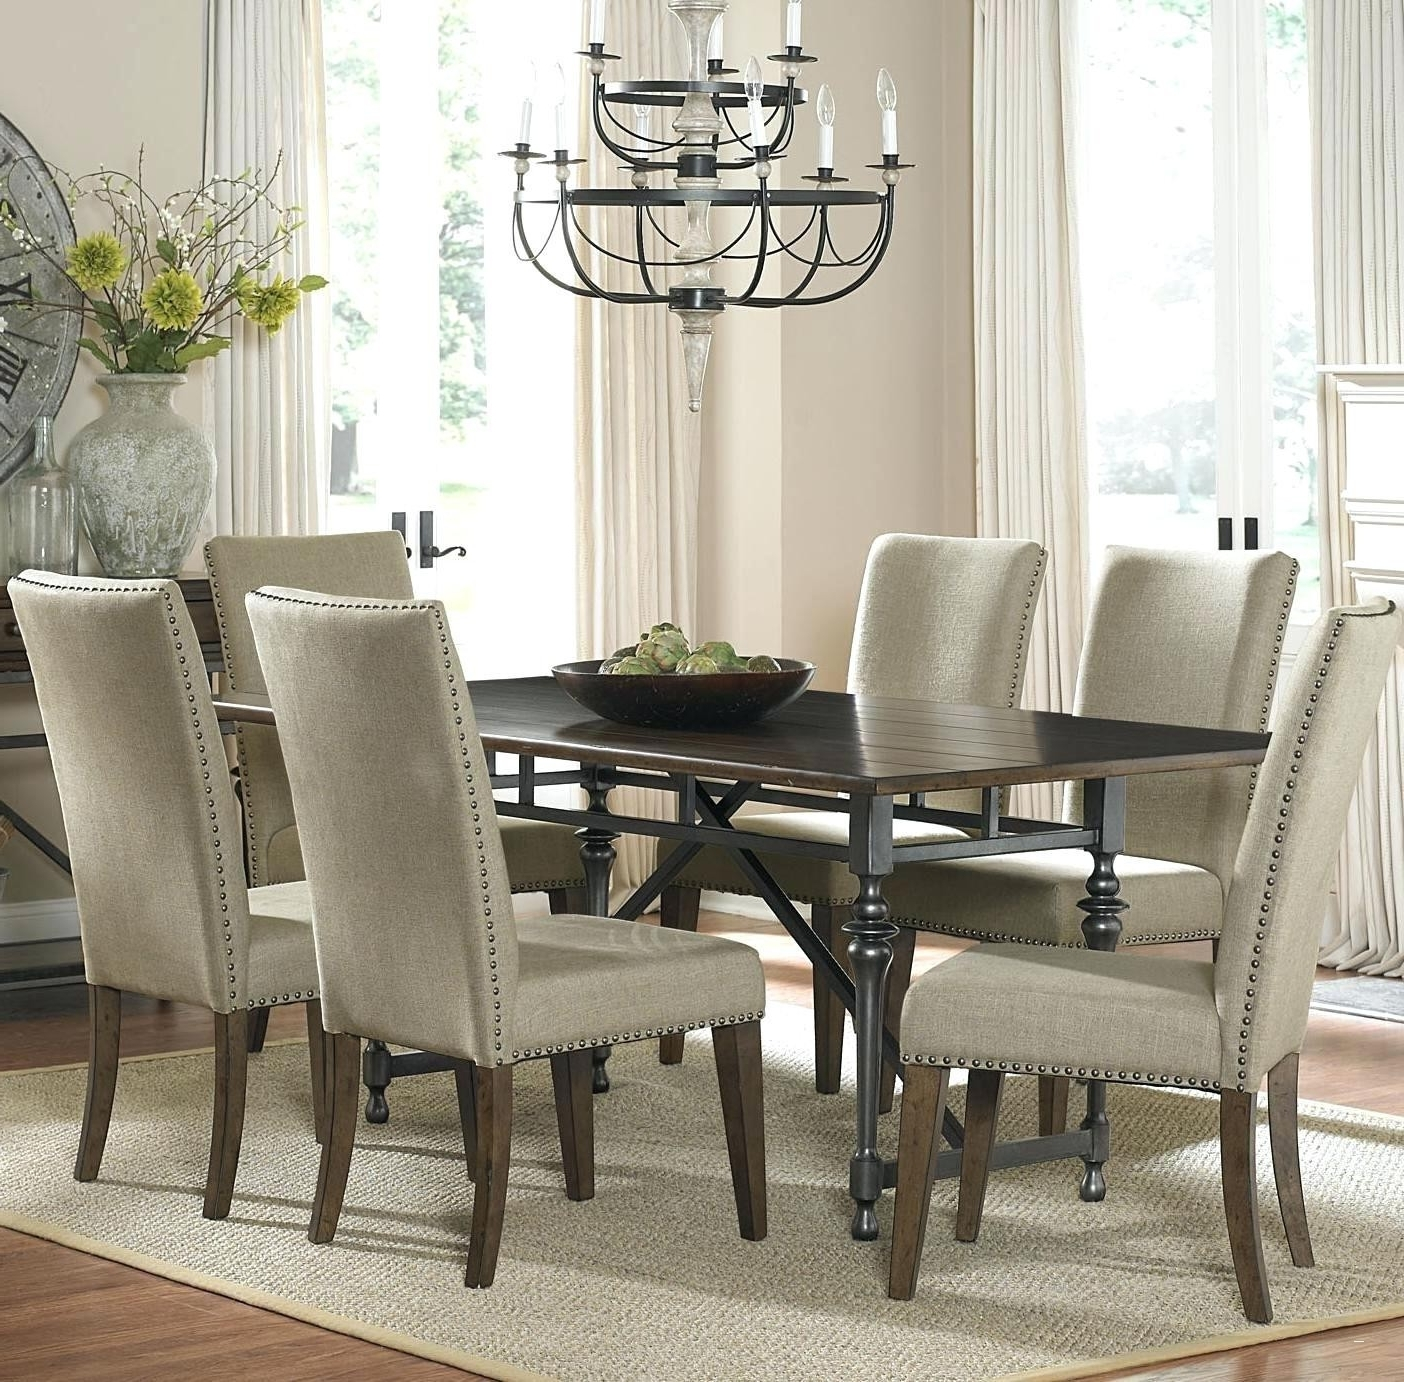 Most Recent Discount Dining Room Chairs Luxury Upholstered Dining Room Chairs Inside Fabric Dining Room Chairs (View 3 of 25)